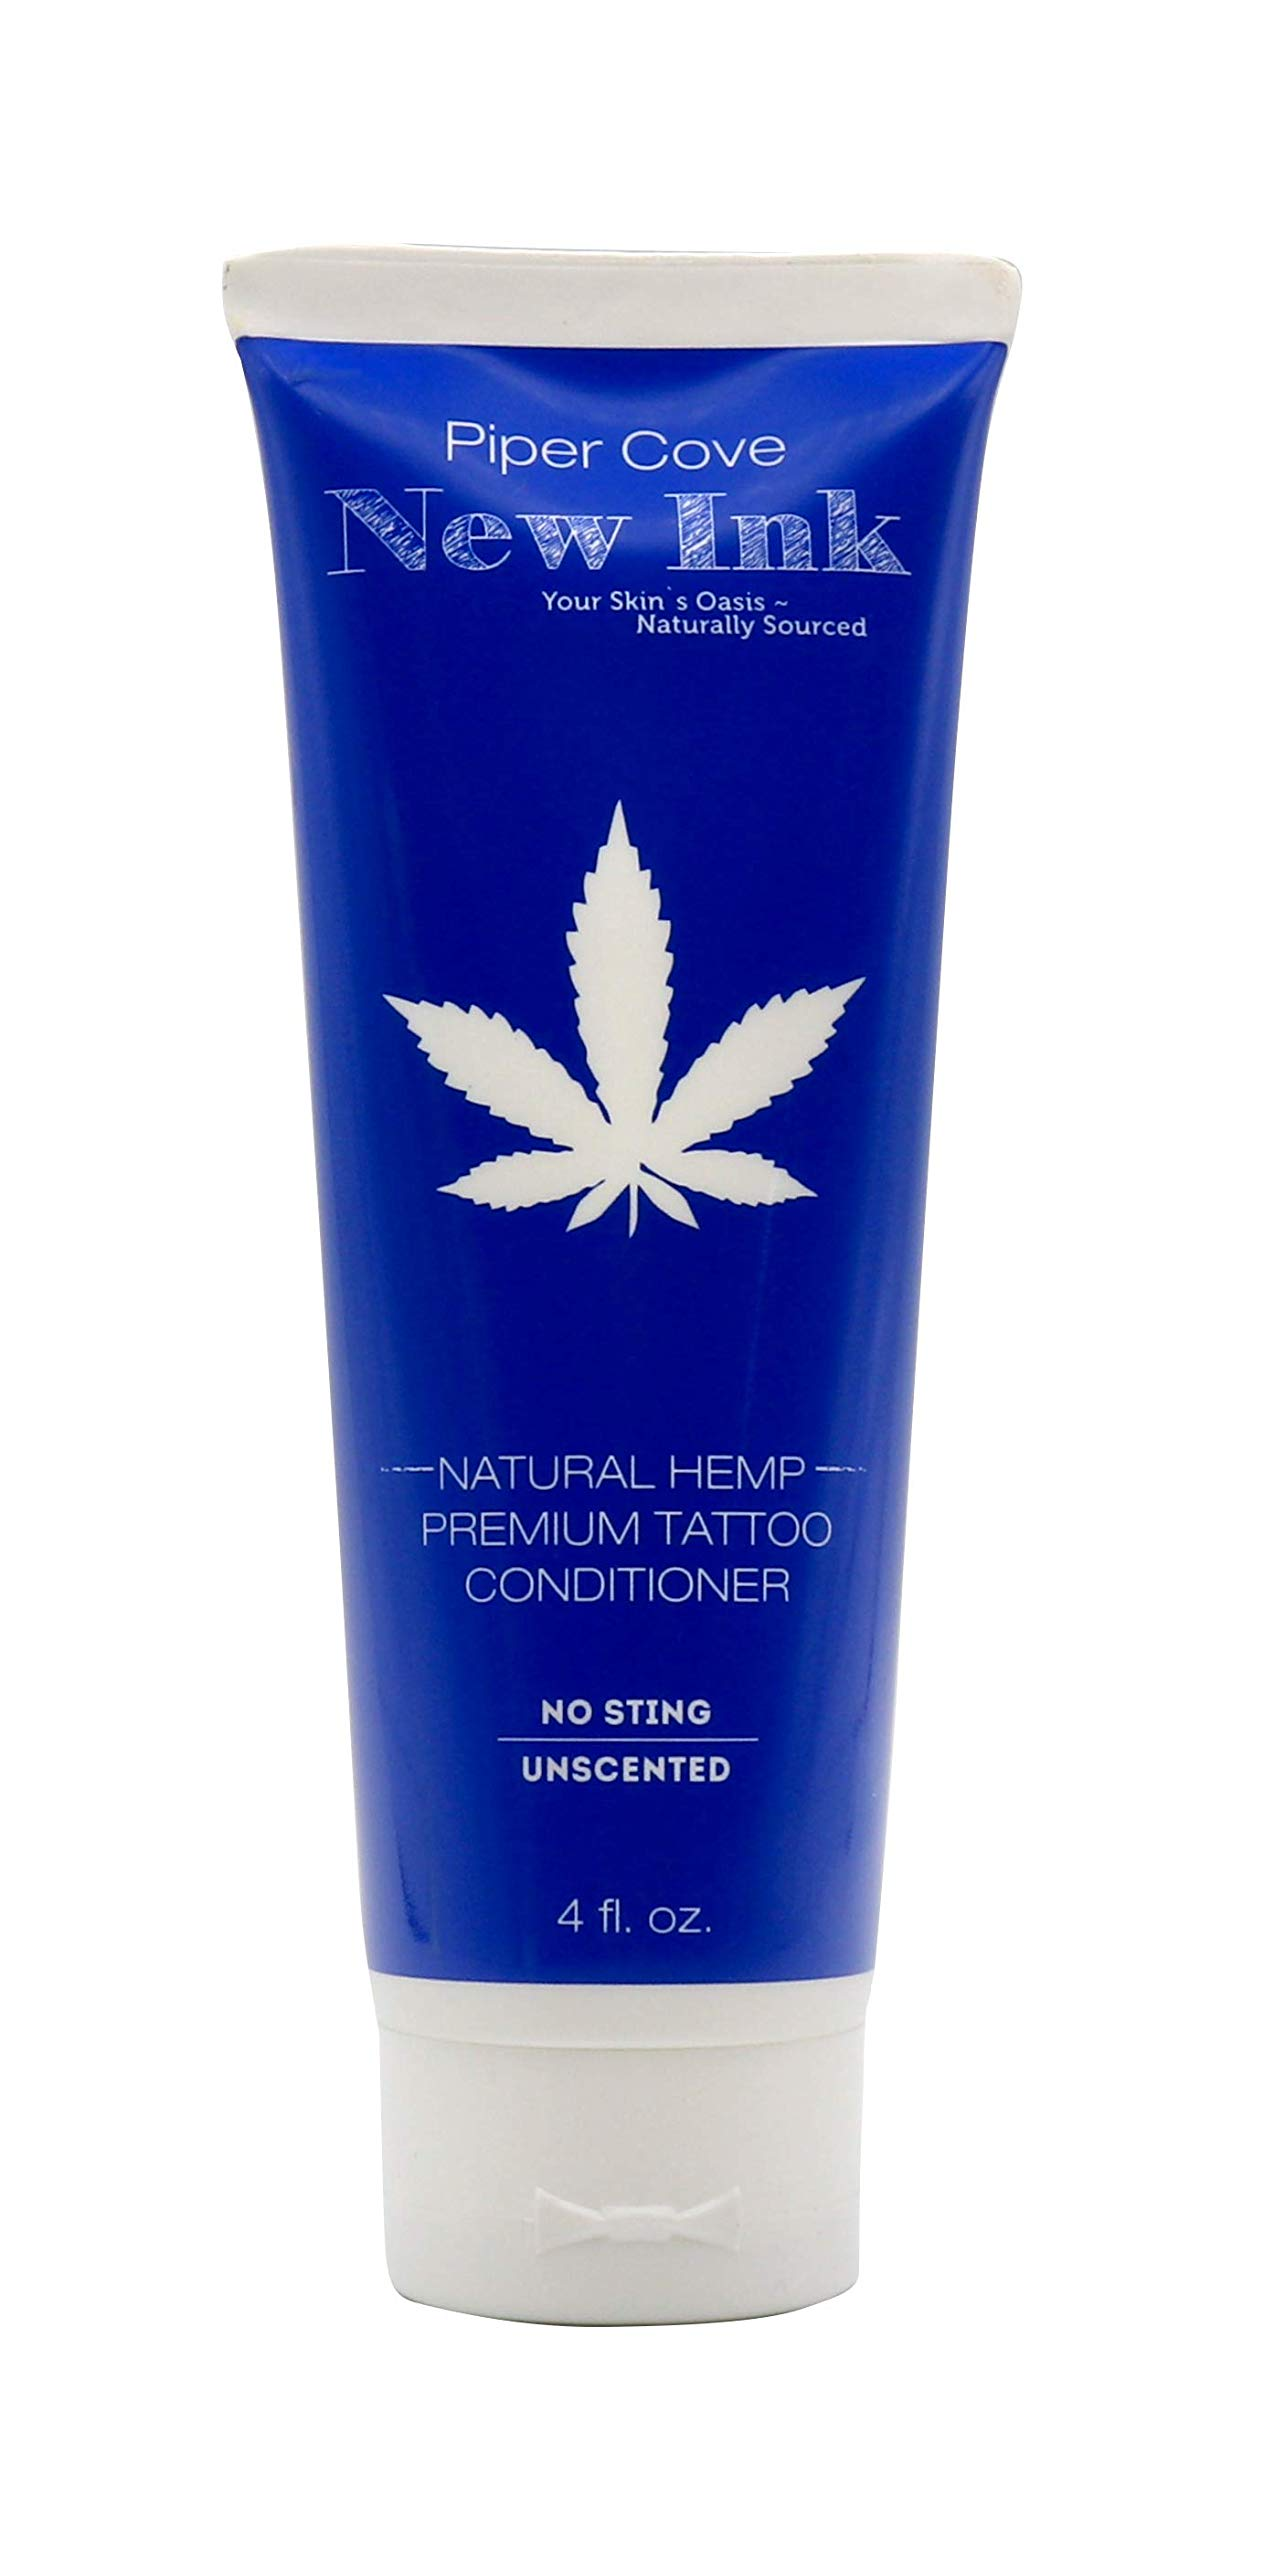 PREMIUM TATTOO LOTION CONDITIONER NEW INK - Before and Aftercare Moisturizer, Organic Shea, Cocoa and Mango Butters and Hempseed Oil, 4 oz. (Natural Hemp) - Piper Cove by Piper Cove